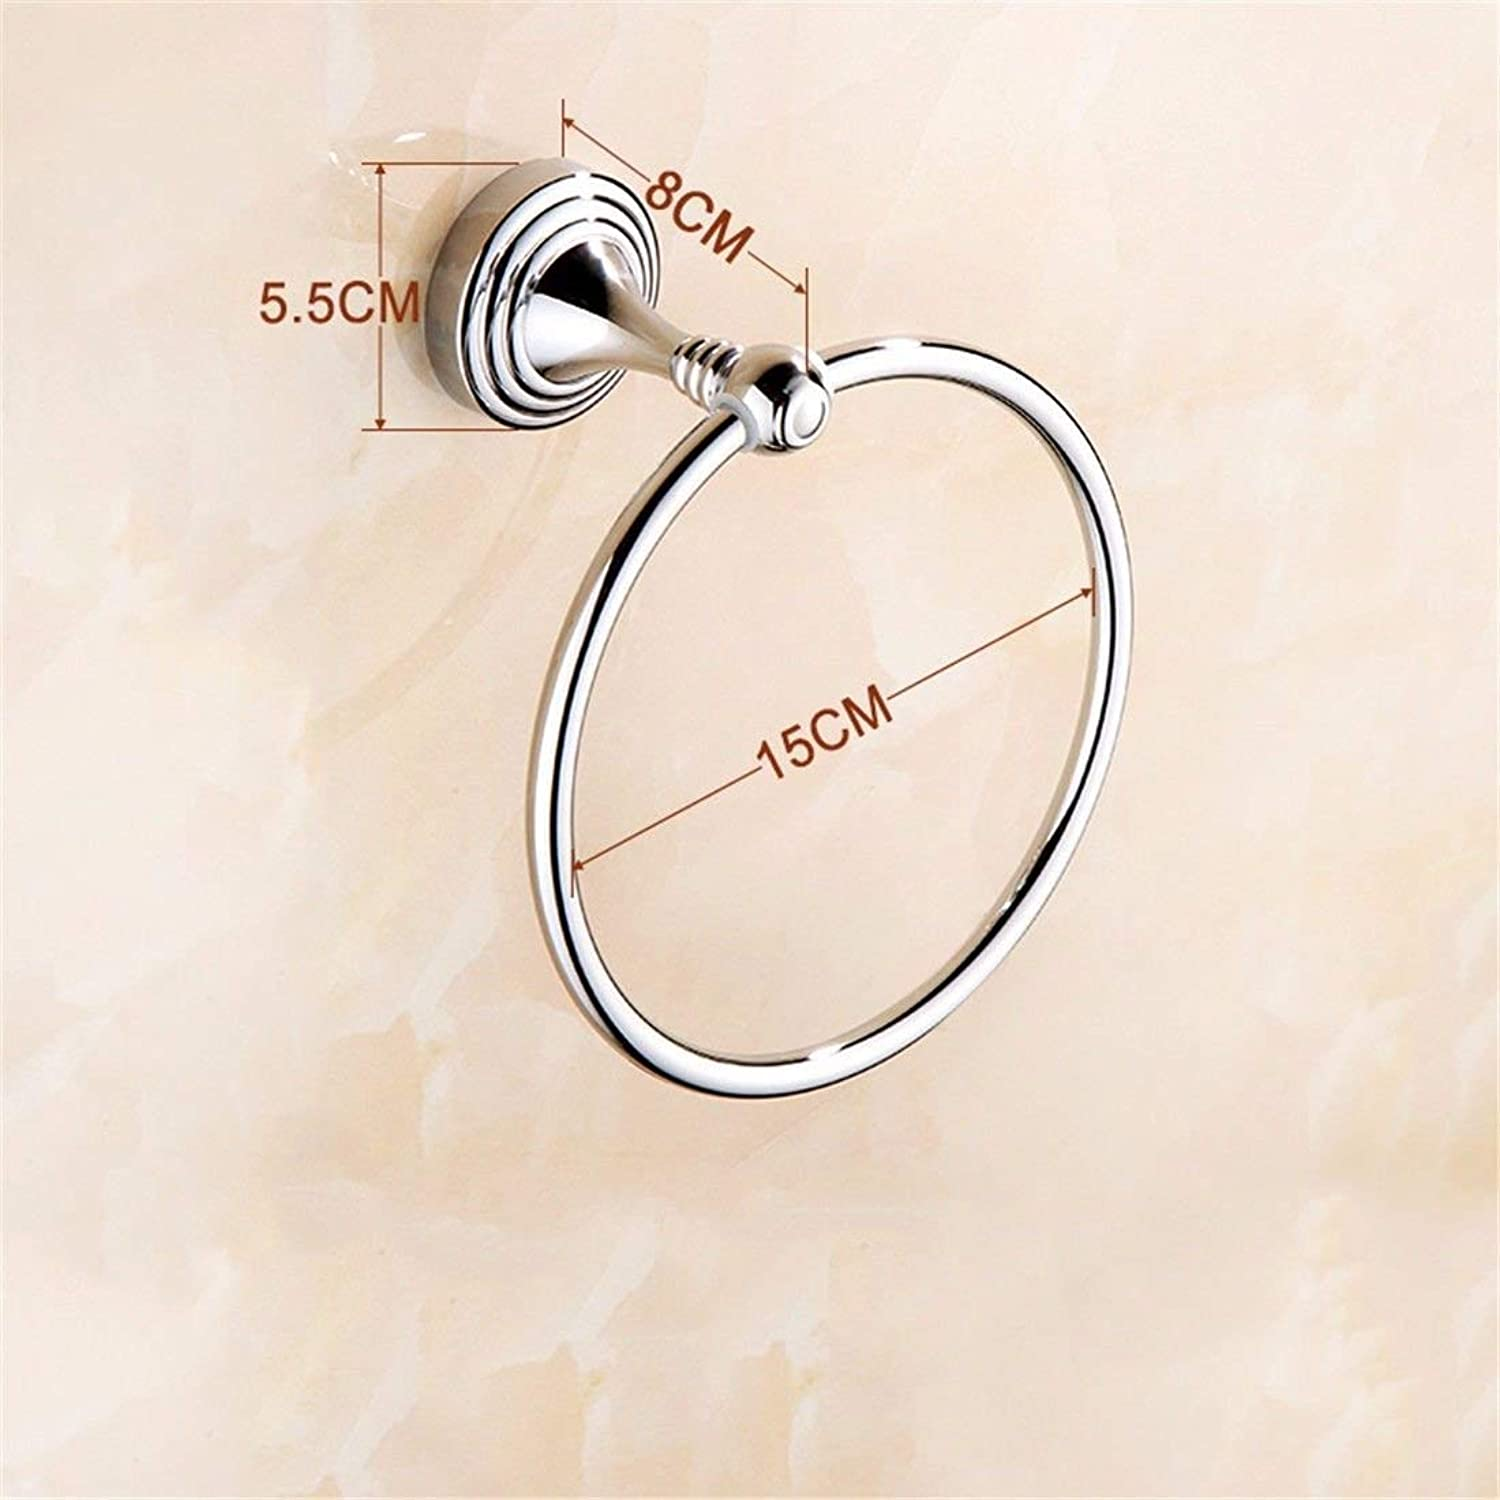 Towel Rack Brass Chrome Plated Wall Mounted Towel Rack Bathroom Accessory Bathroom Towel Shelf (color   Towel Ring)